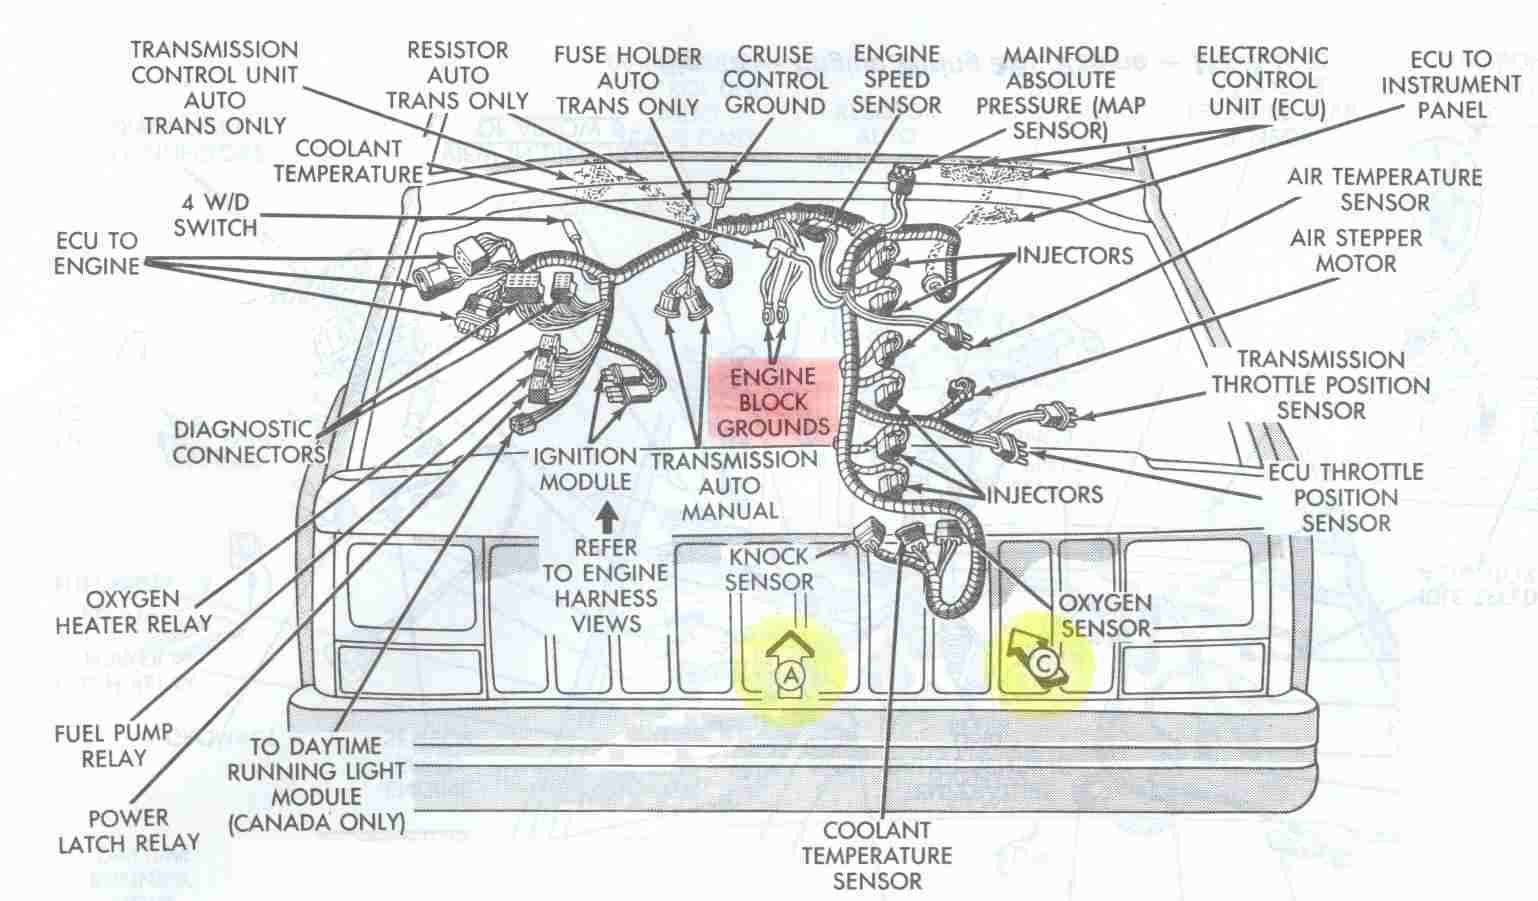 ab0134a7d9e021431187af597eb4aeca engine bay schematic showing major electrical ground points for 1999 jeep cherokee ignition wiring diagram at crackthecode.co